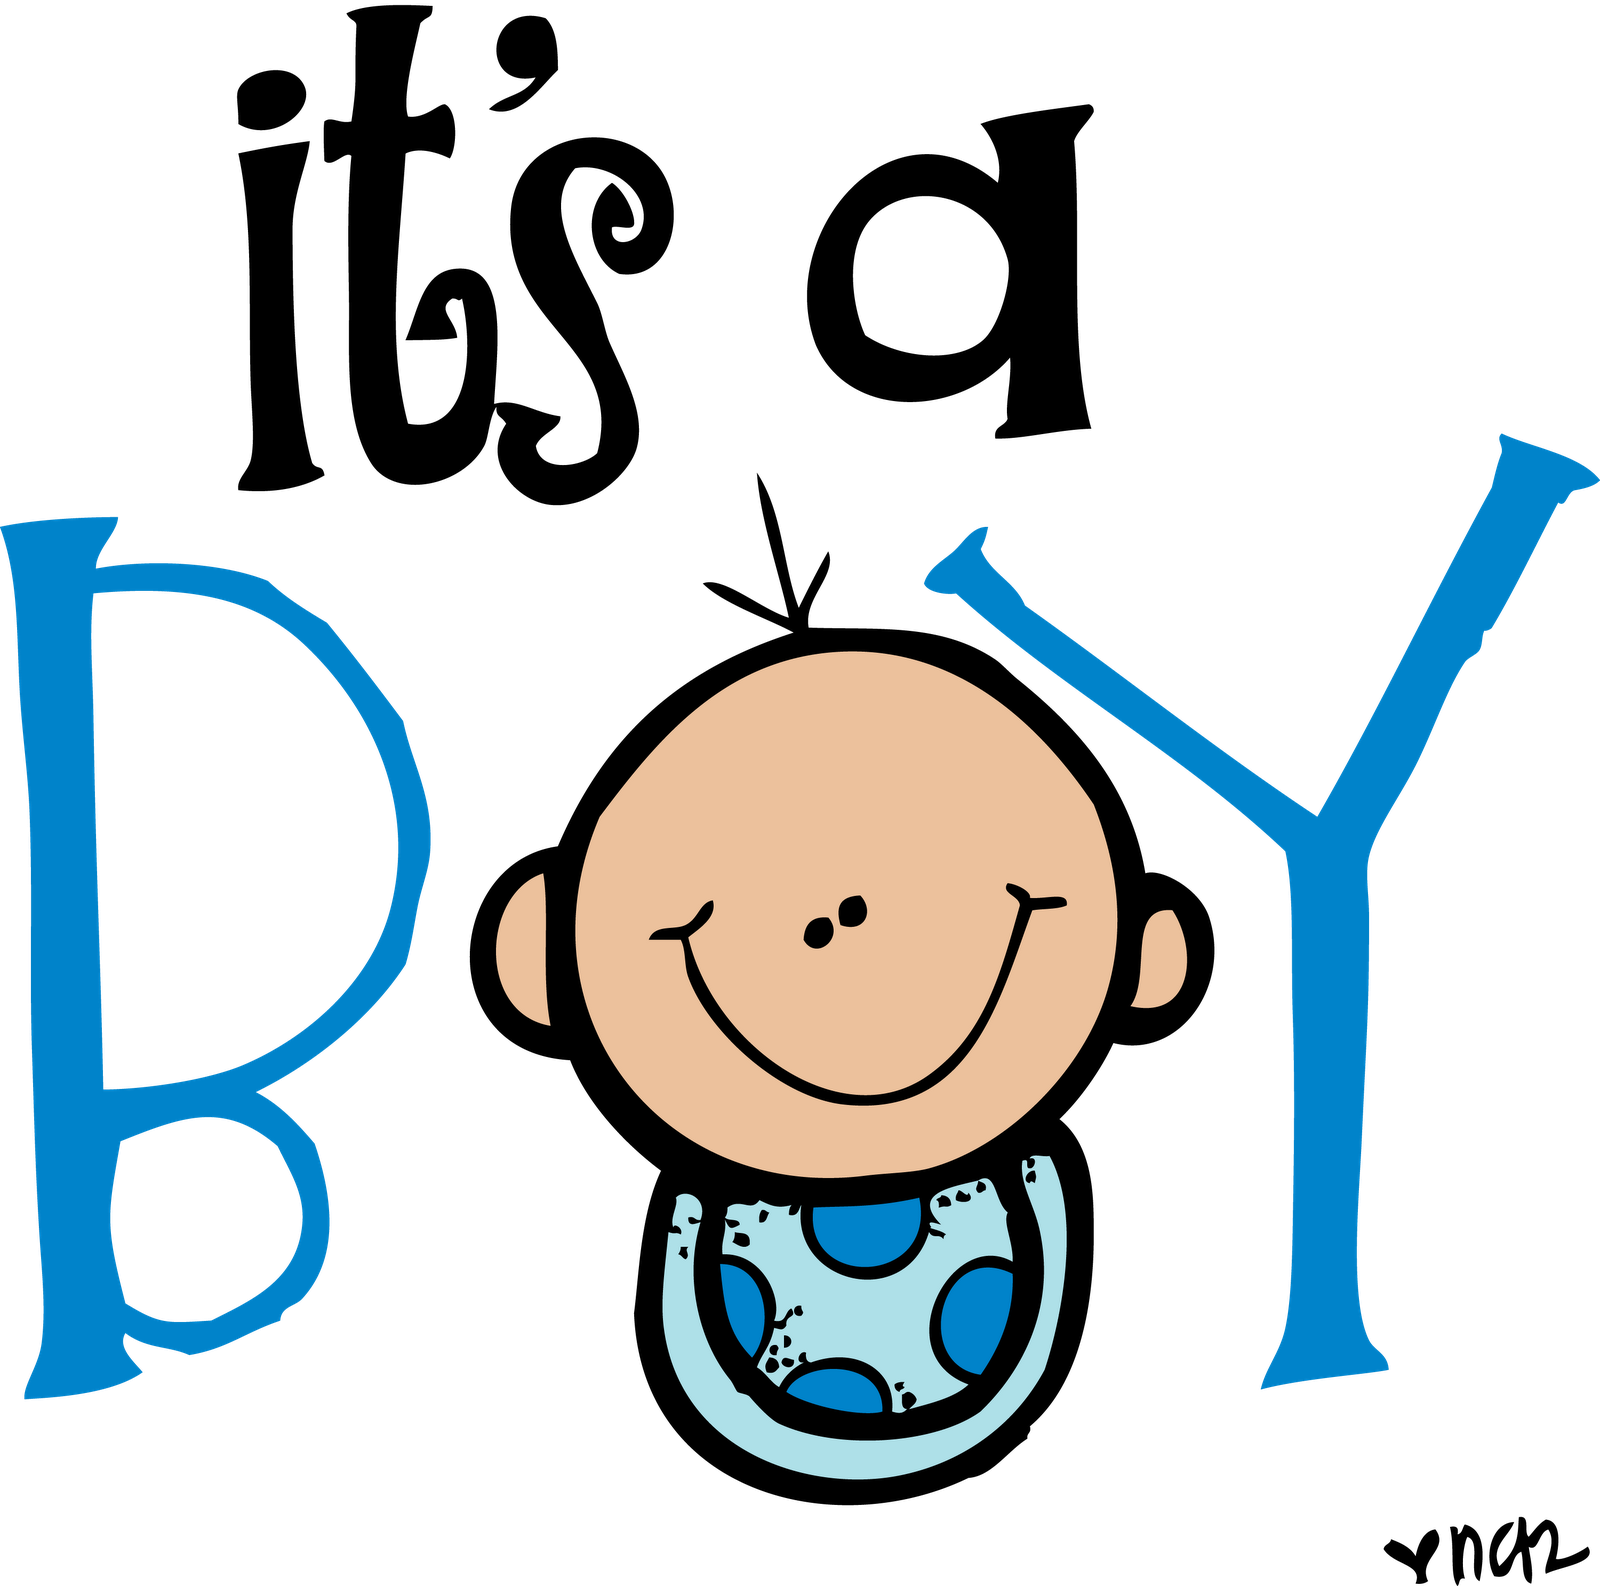 Baby boy footprints png. Its a colored pinterest